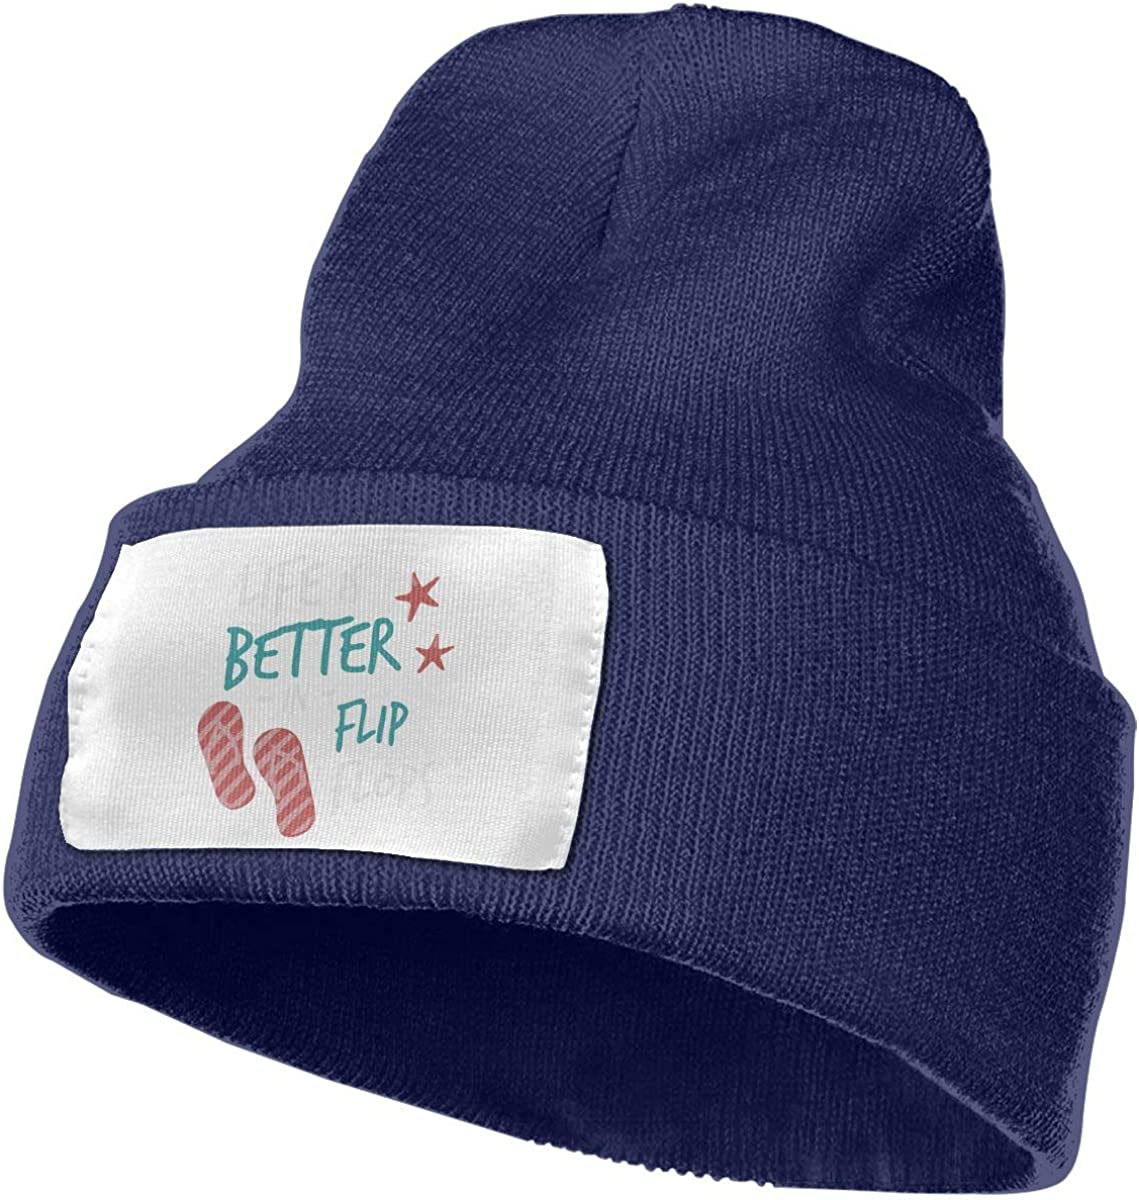 Adults Life is Better in Flip Flops Elastic Knitted Beanie Cap Winter Warm Skull Hats